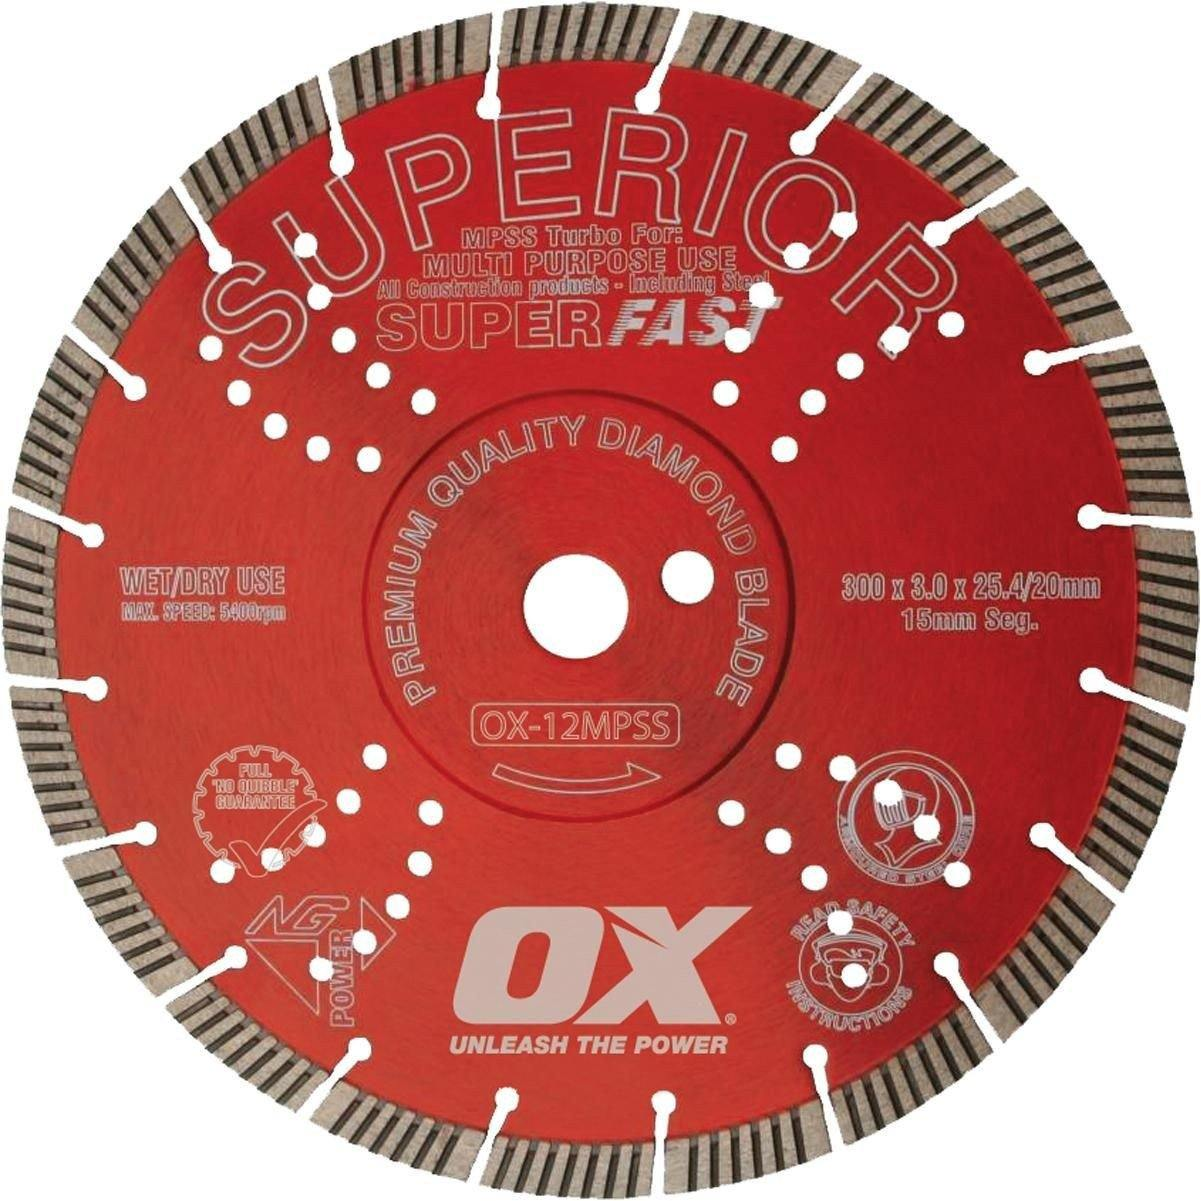 Ox 350mm MPSS Superior Superfast Segmented Turbo Diamond Blade-Normal-Prospectors